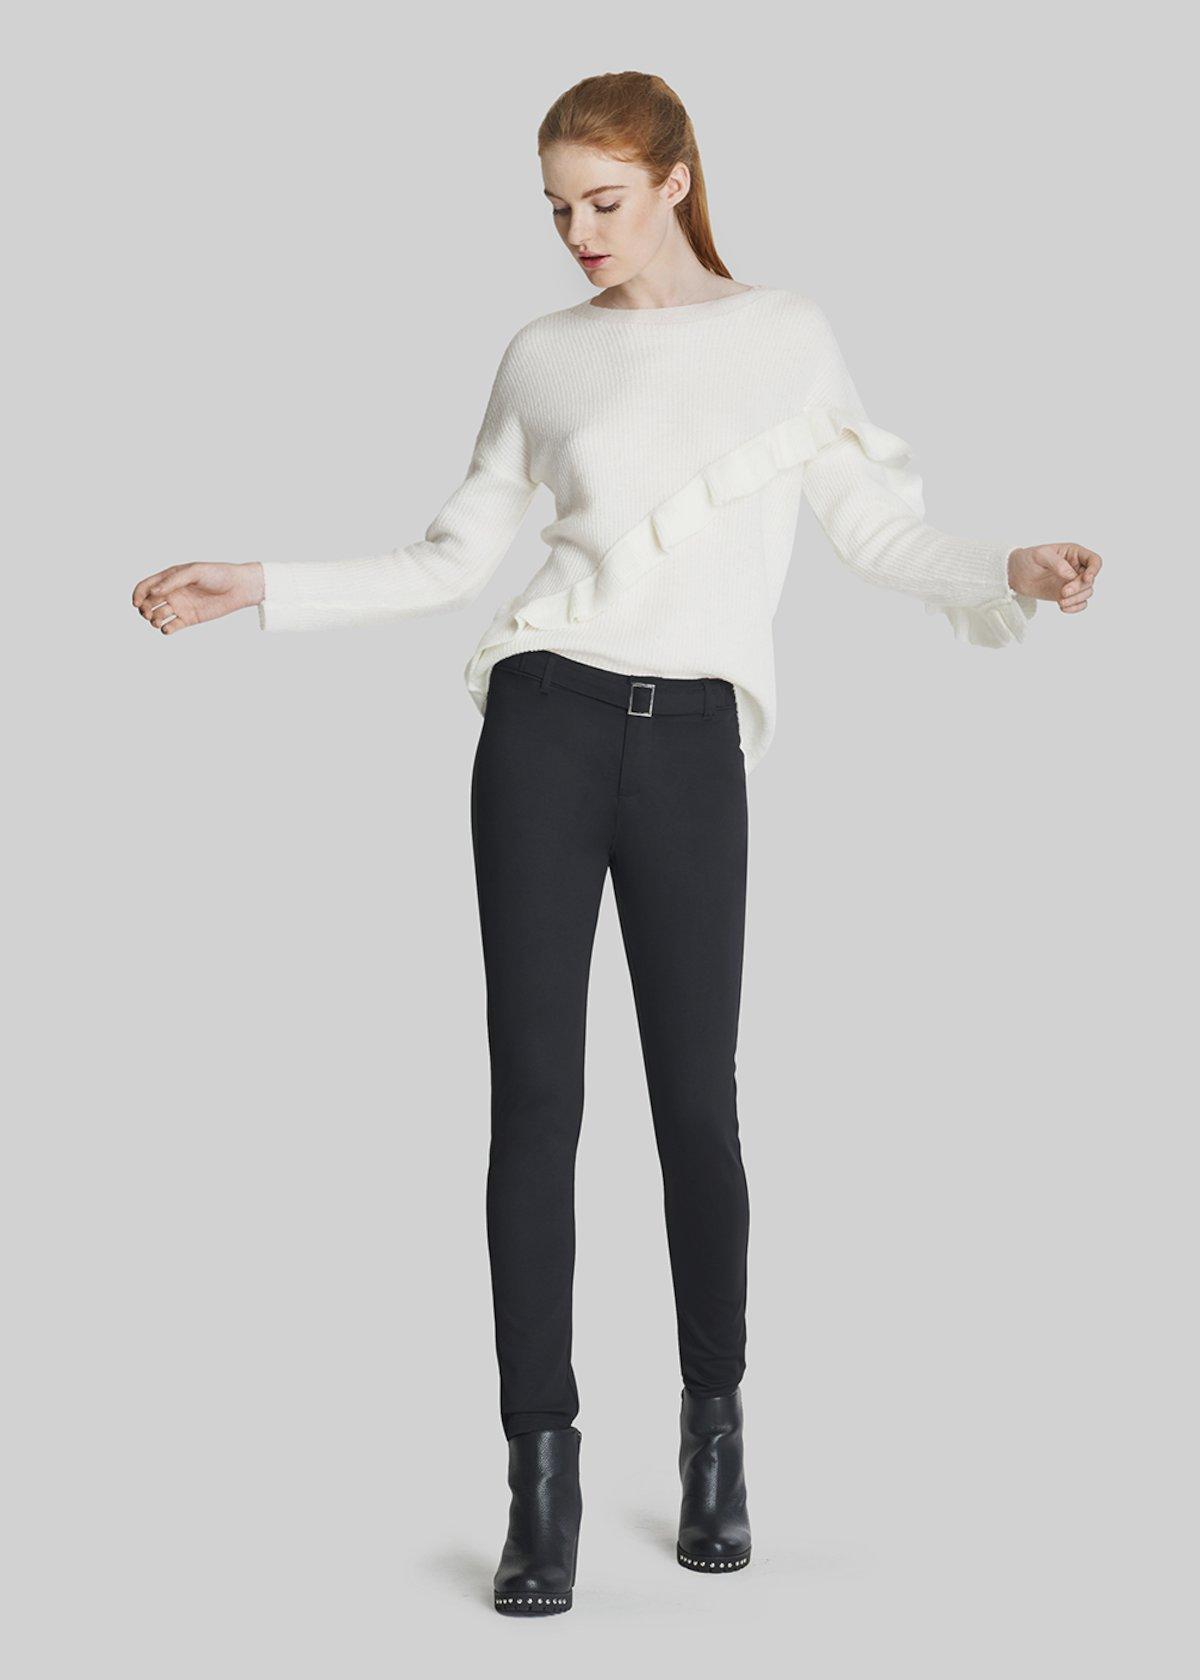 Mike sweater with asymmetric ruffle